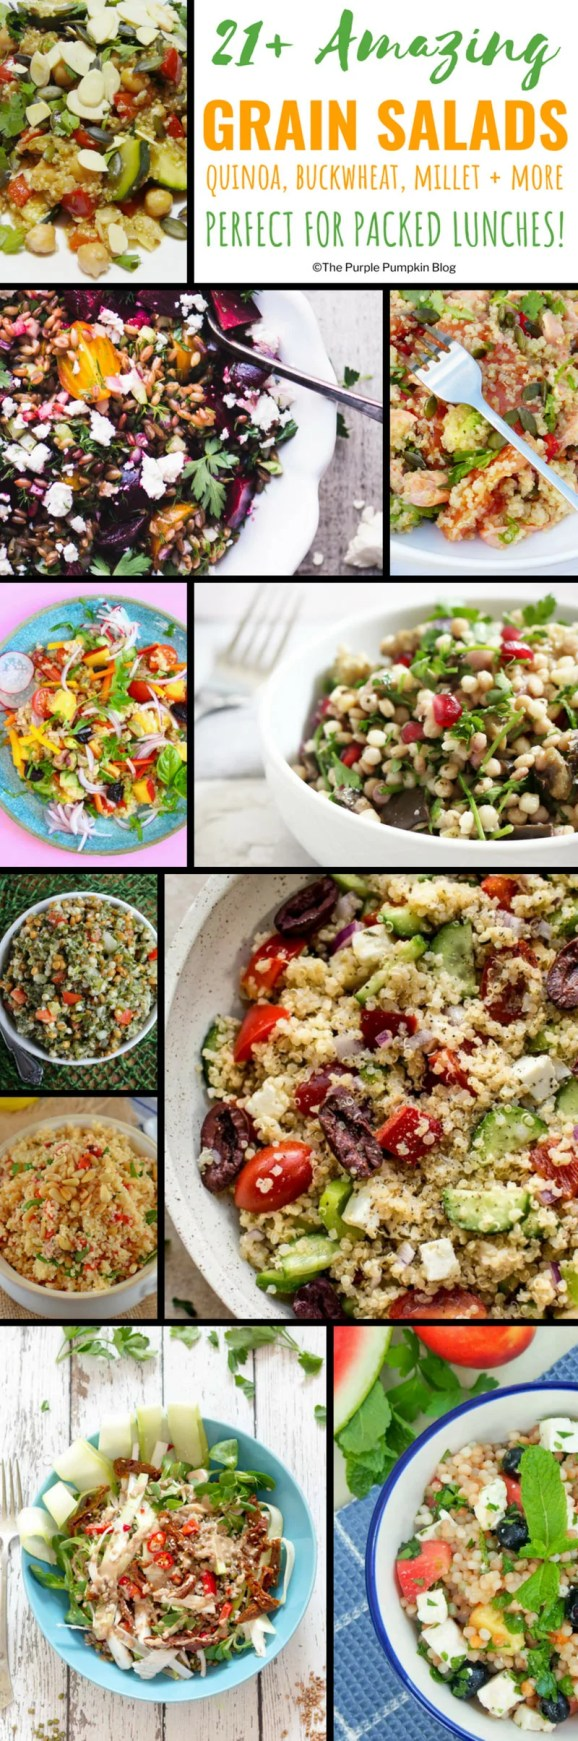 Amazing Grain Salads